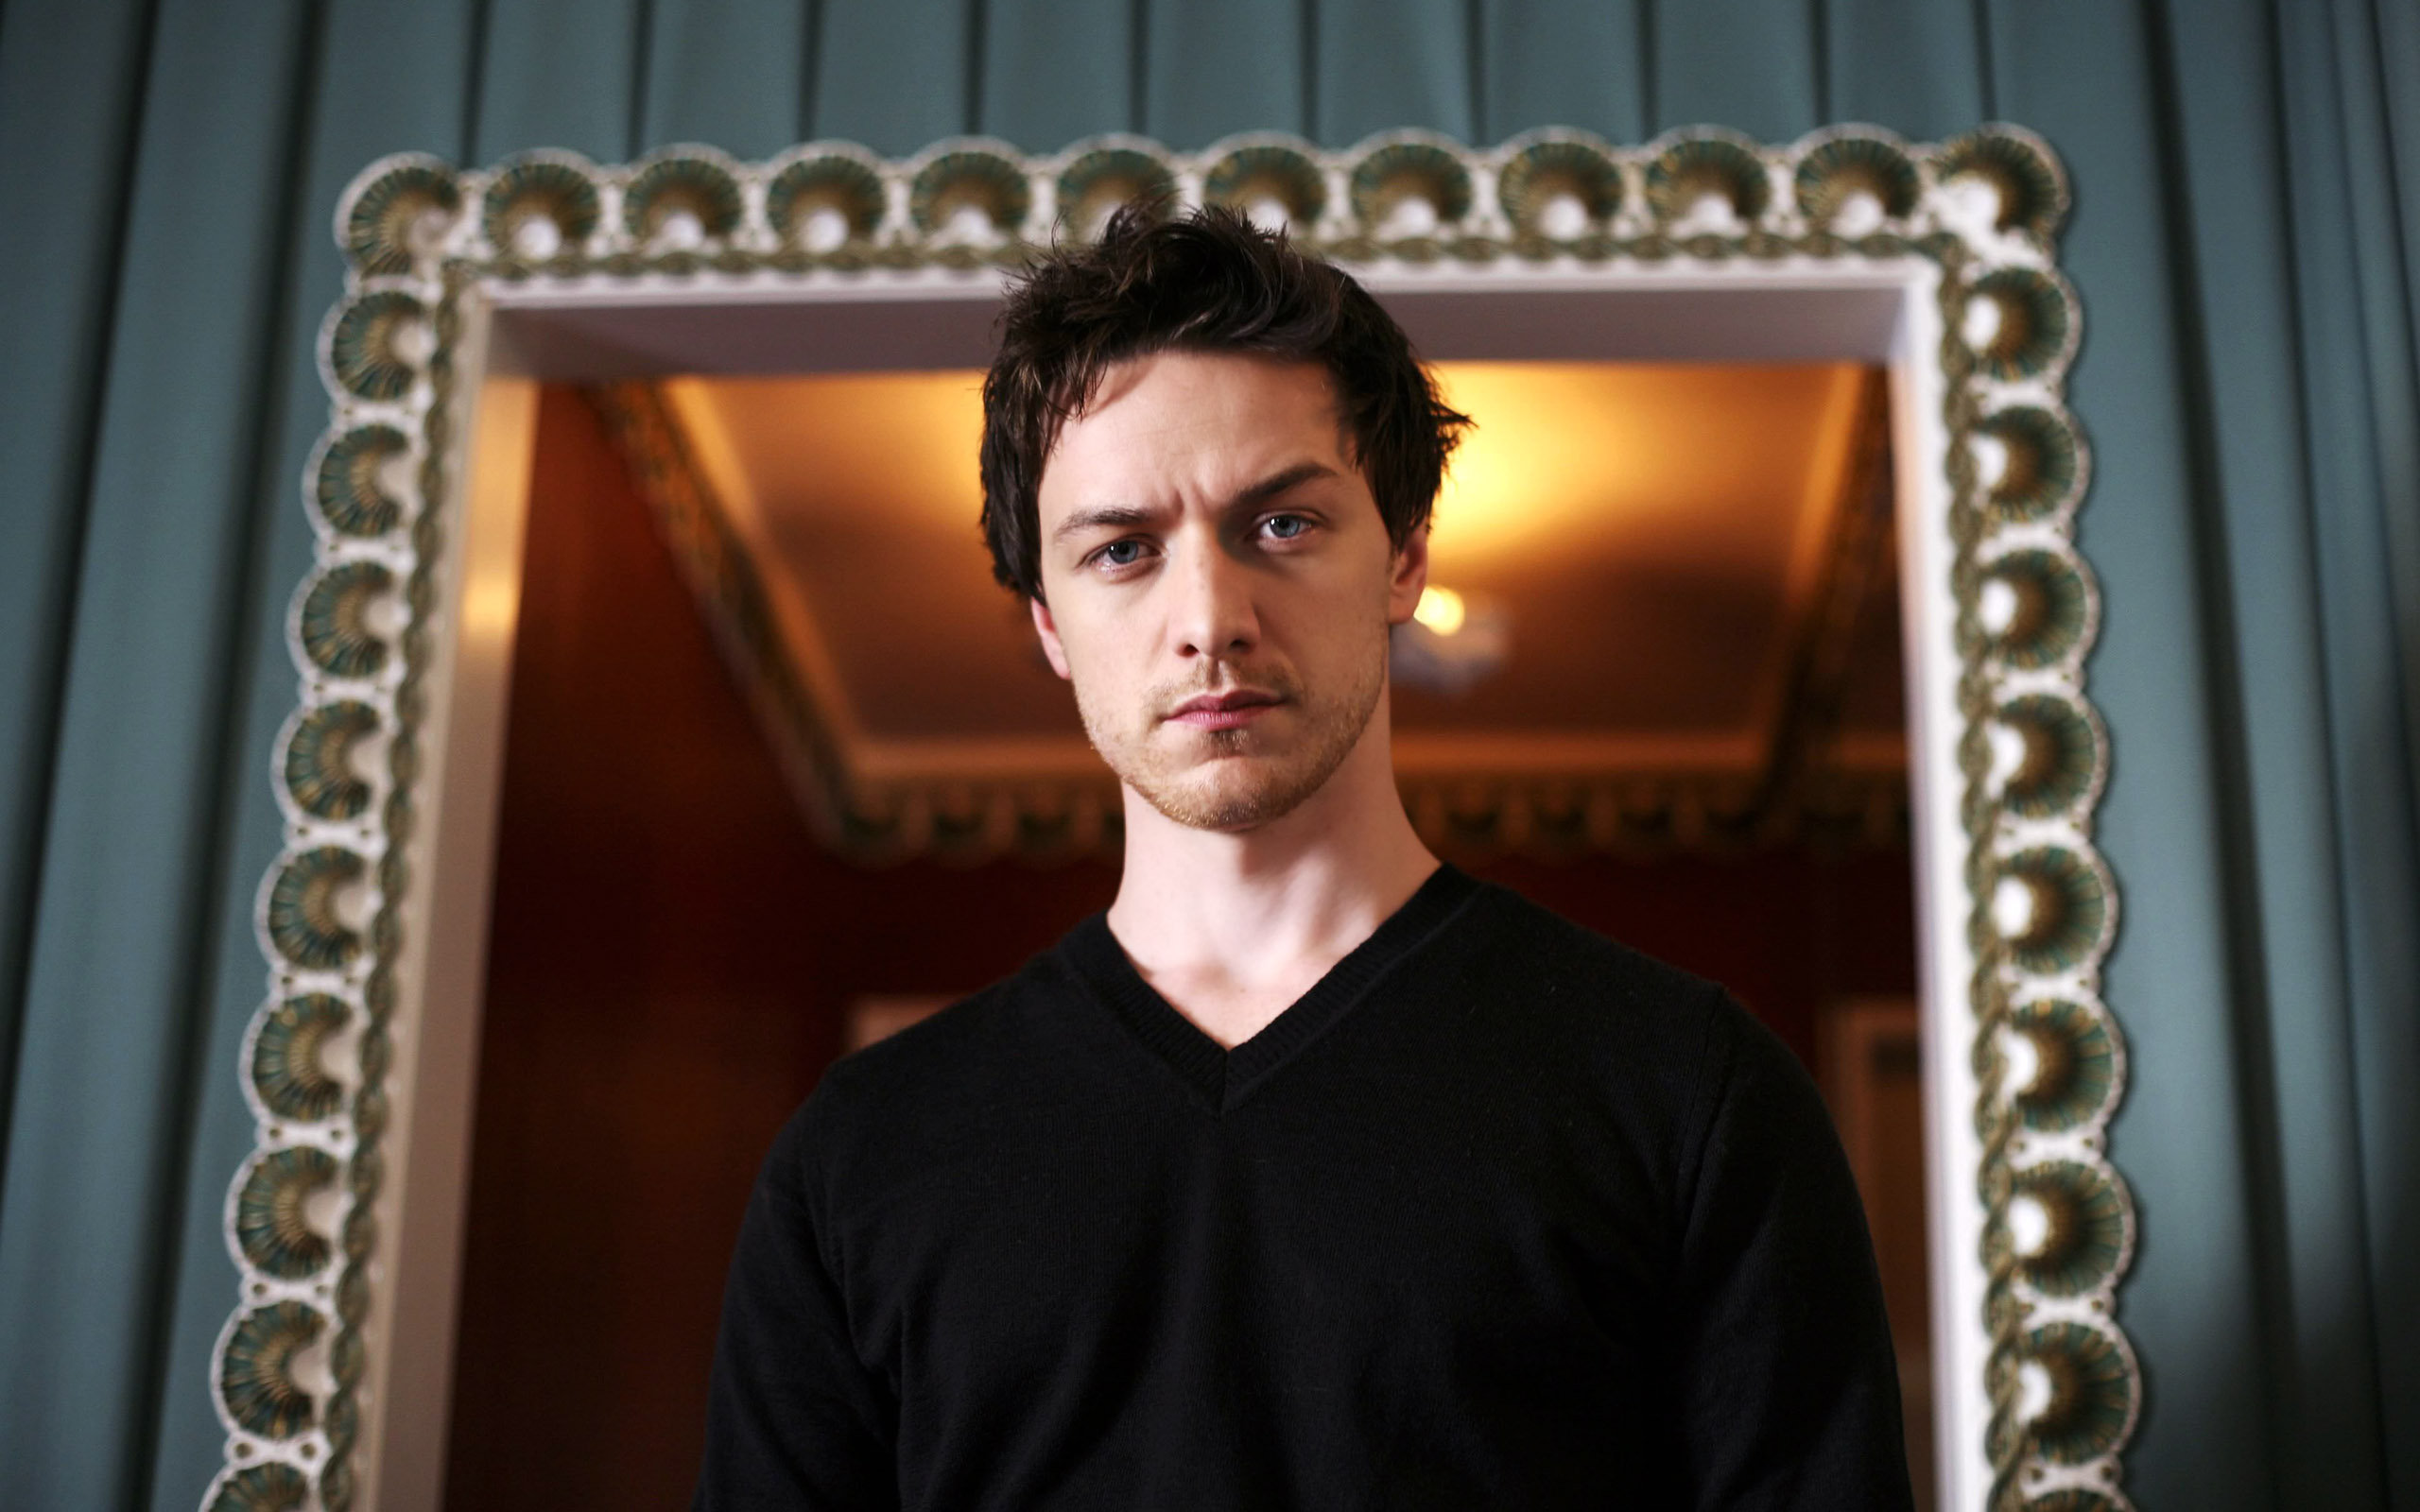 Awesome James McAvoy free wallpaper ID:254978 for hd 2560x1600 PC